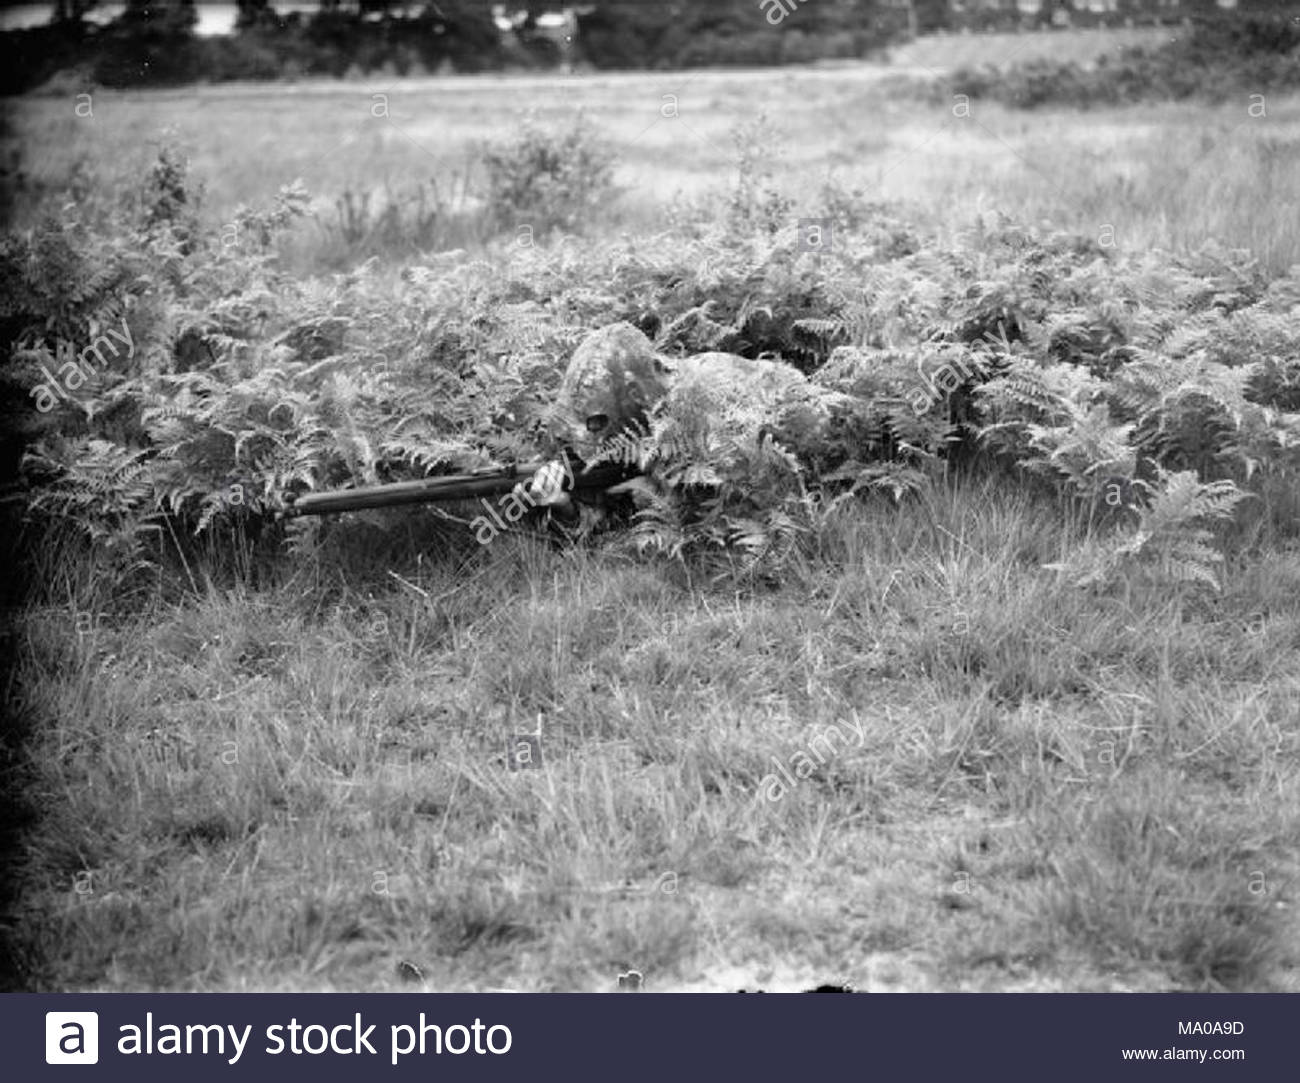 The British Army In United Kingdom 1939 45 Camouflaged Lovat Scout Prone Firing Position Dressed Sniper Suit Bisley Surrey 9 July 1940